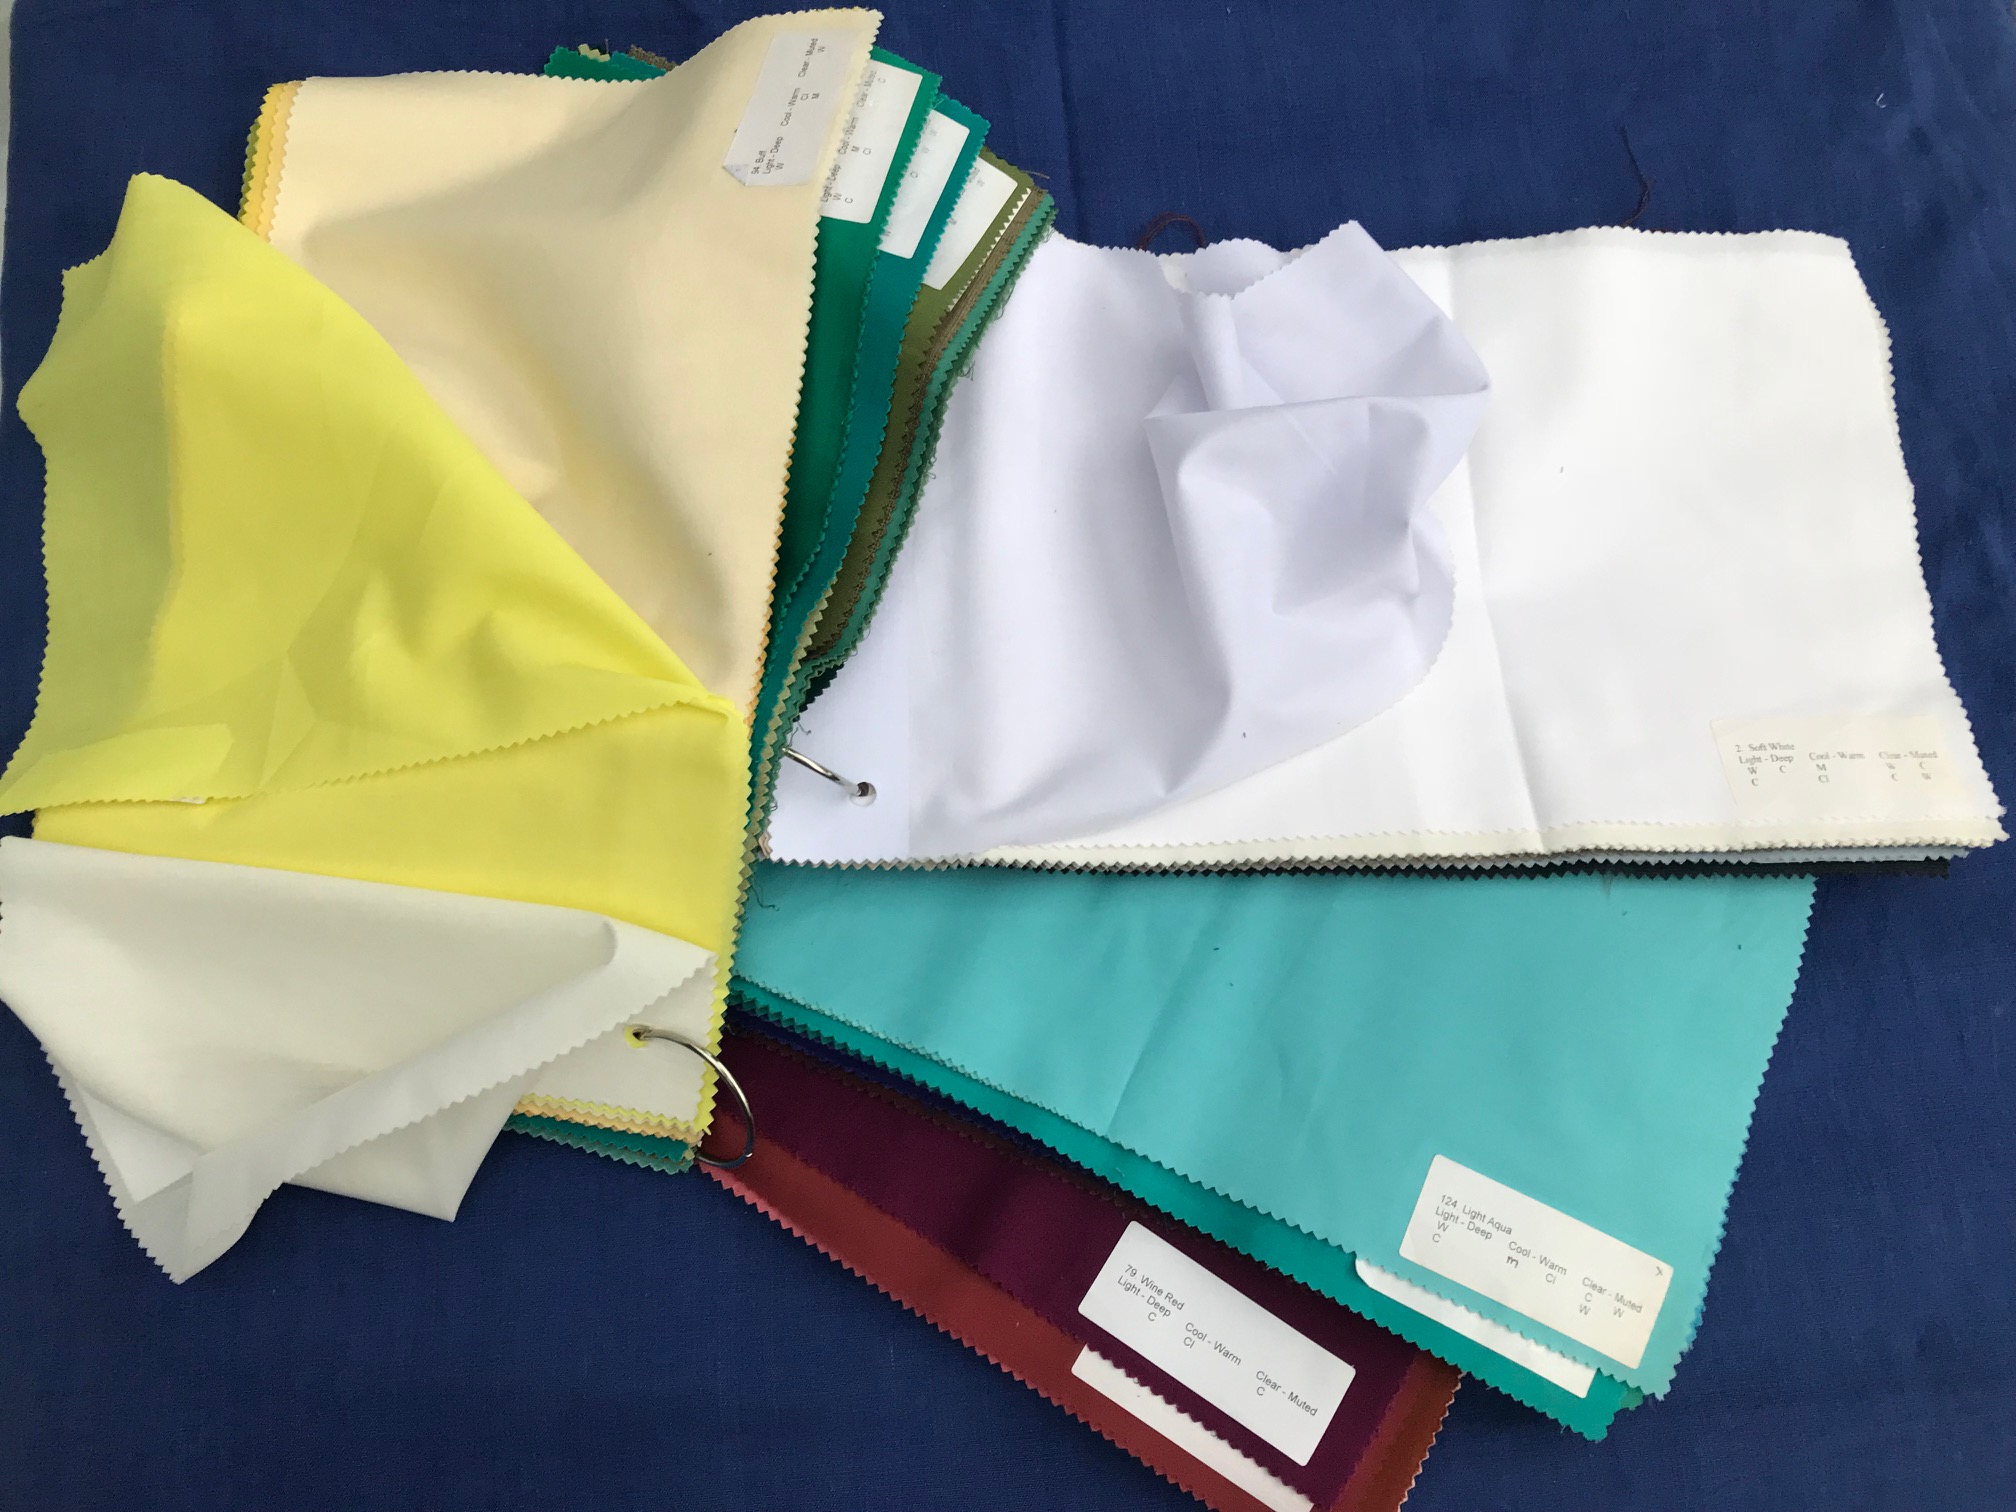 confirming drapes - 4 sets of colour drapes to show the client how their swatch colours compliment them.